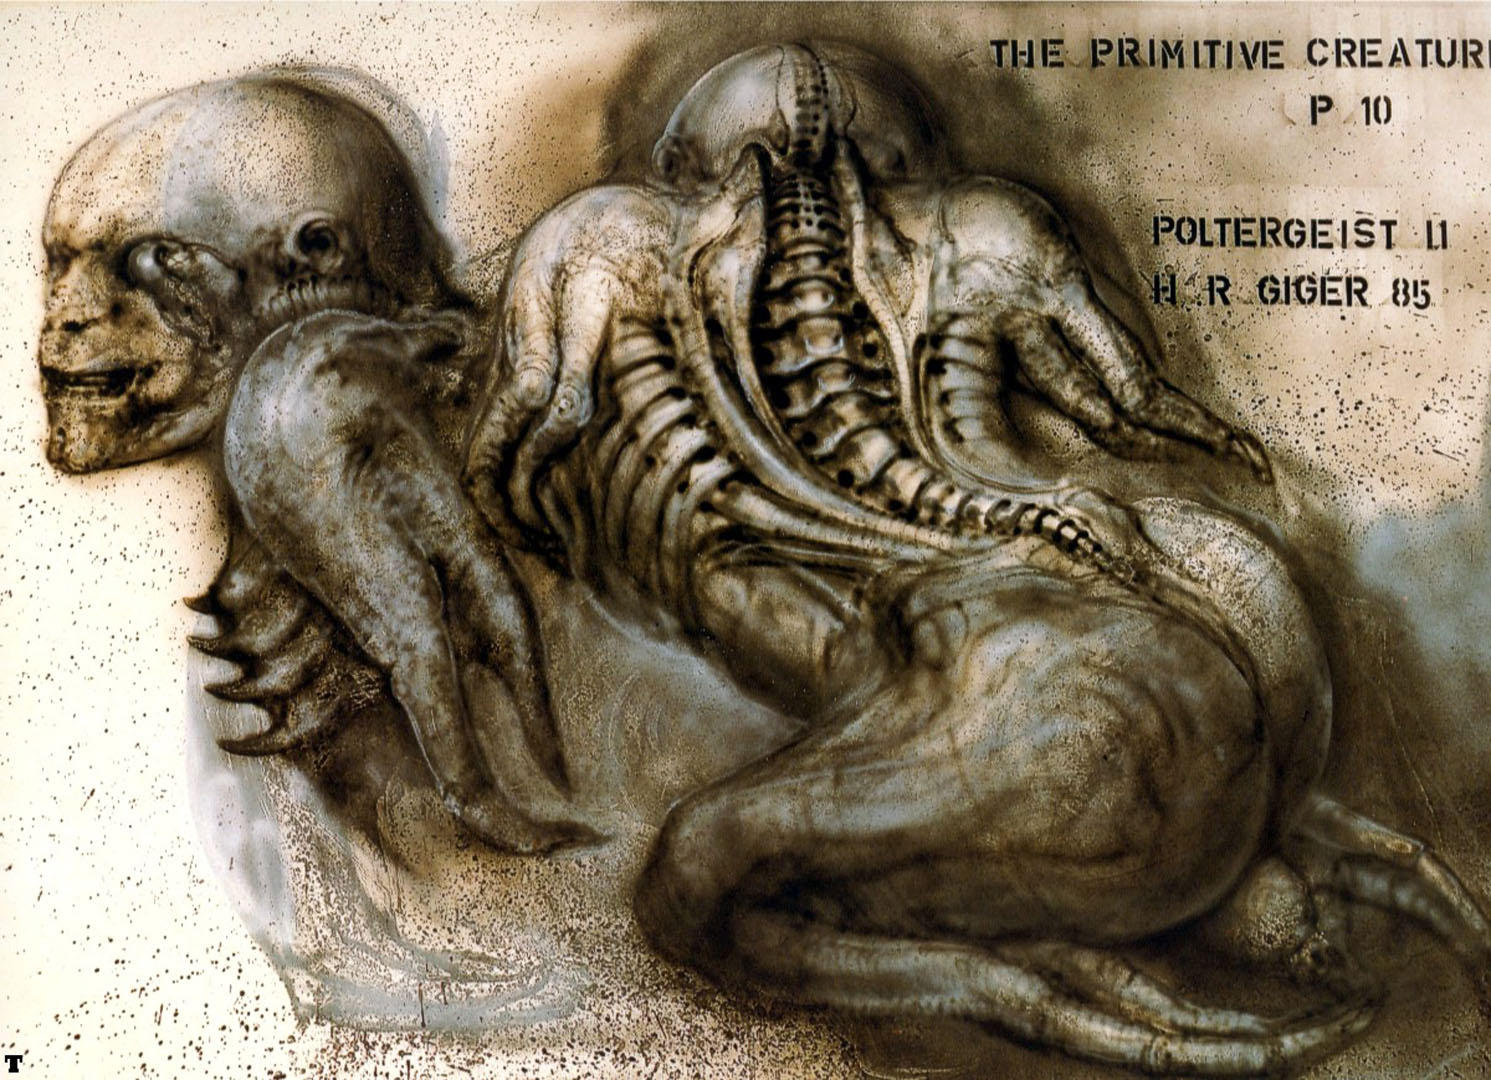 Http//ayaycouk/backgrounds/science Fiction/h R Giger/pii The Primitive Creature P10jpg  HR